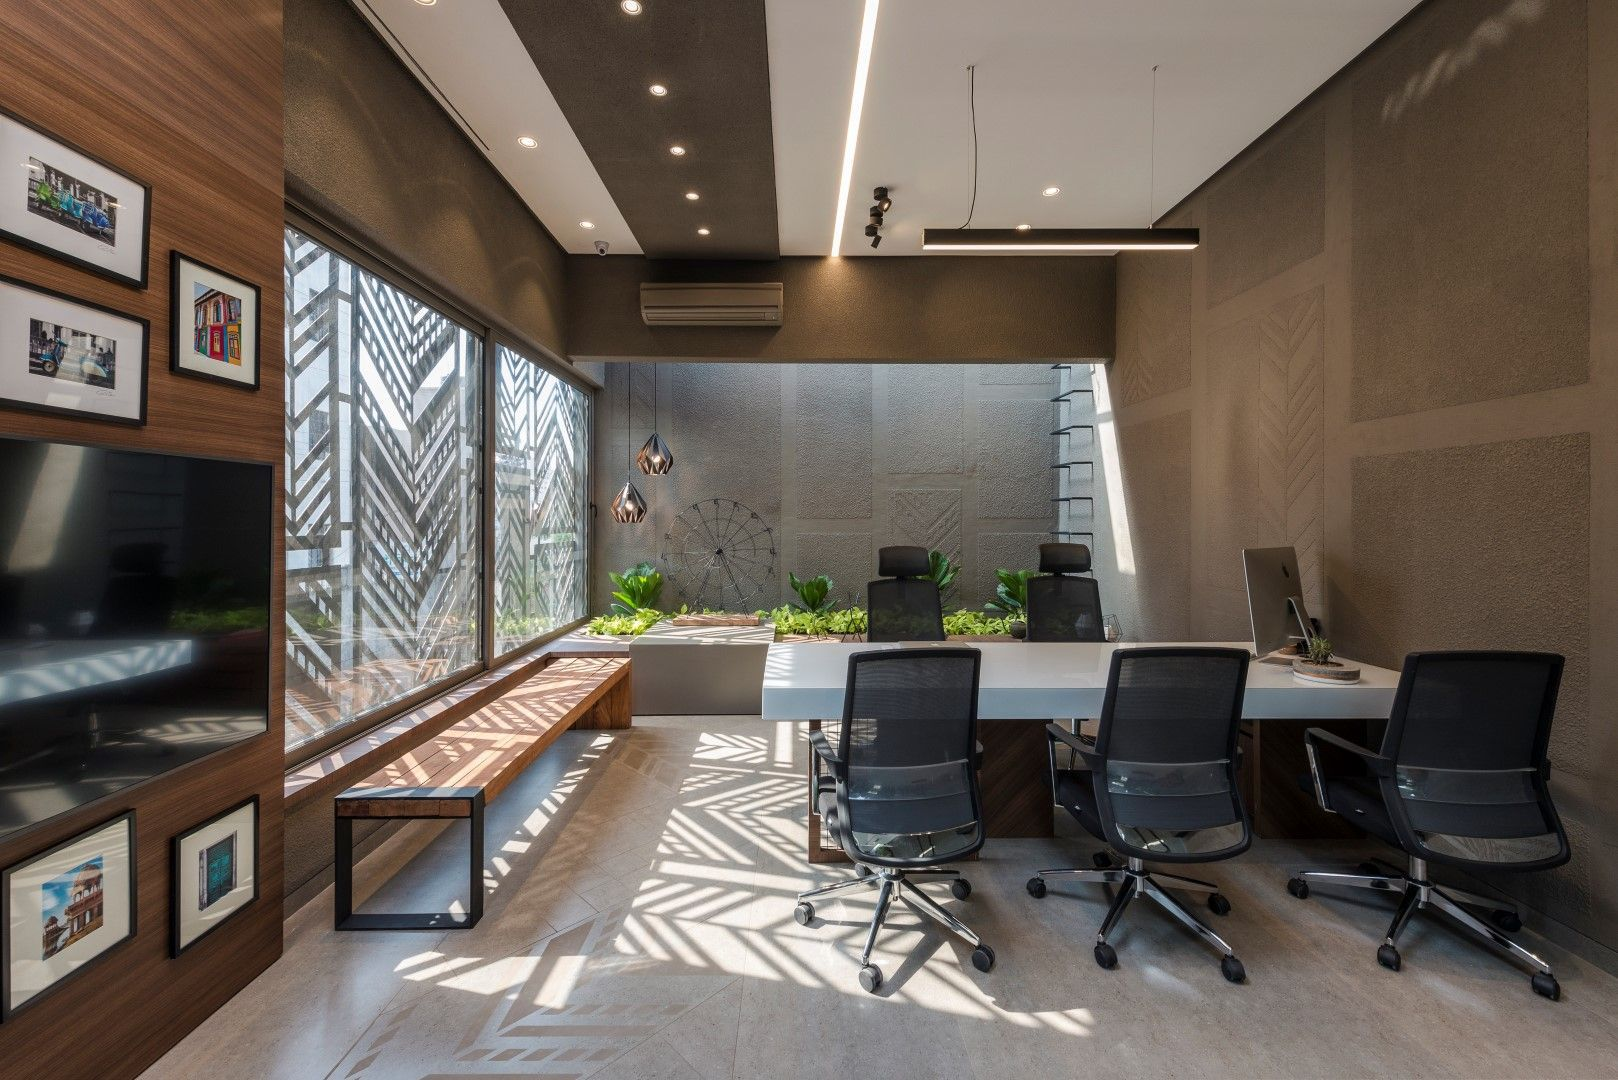 Buying Very Cheap Office Furniture Correctly In 2020 Architect Office Interior Office Interior Design Modern Office Interiors